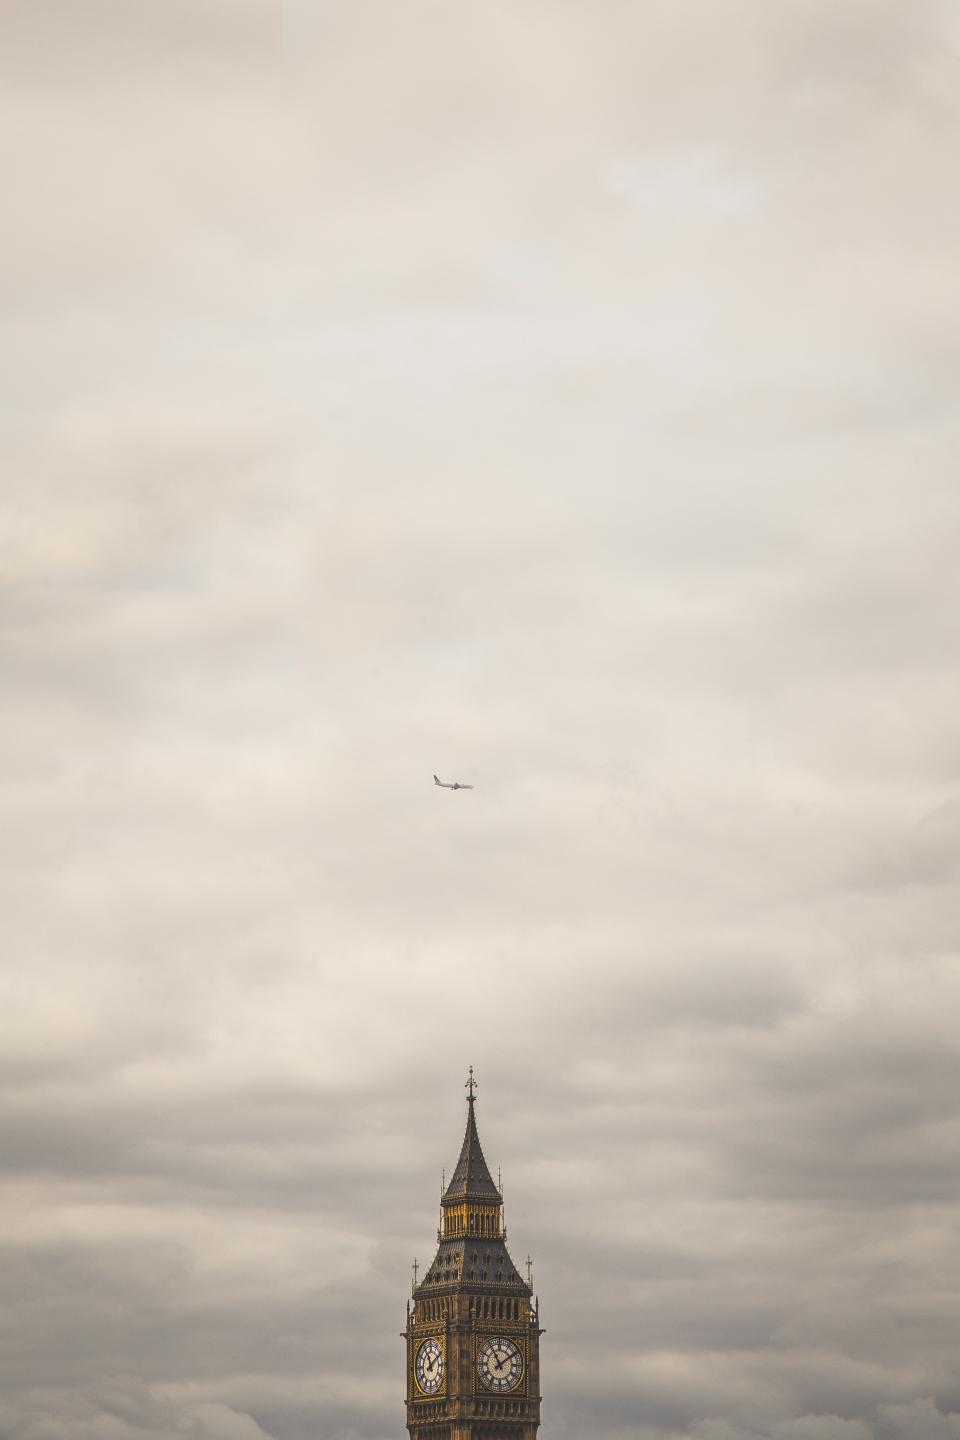 big ben, clock, time, building, architecture, sky, clouds, cloudy, airplane, travel, trip, transportation